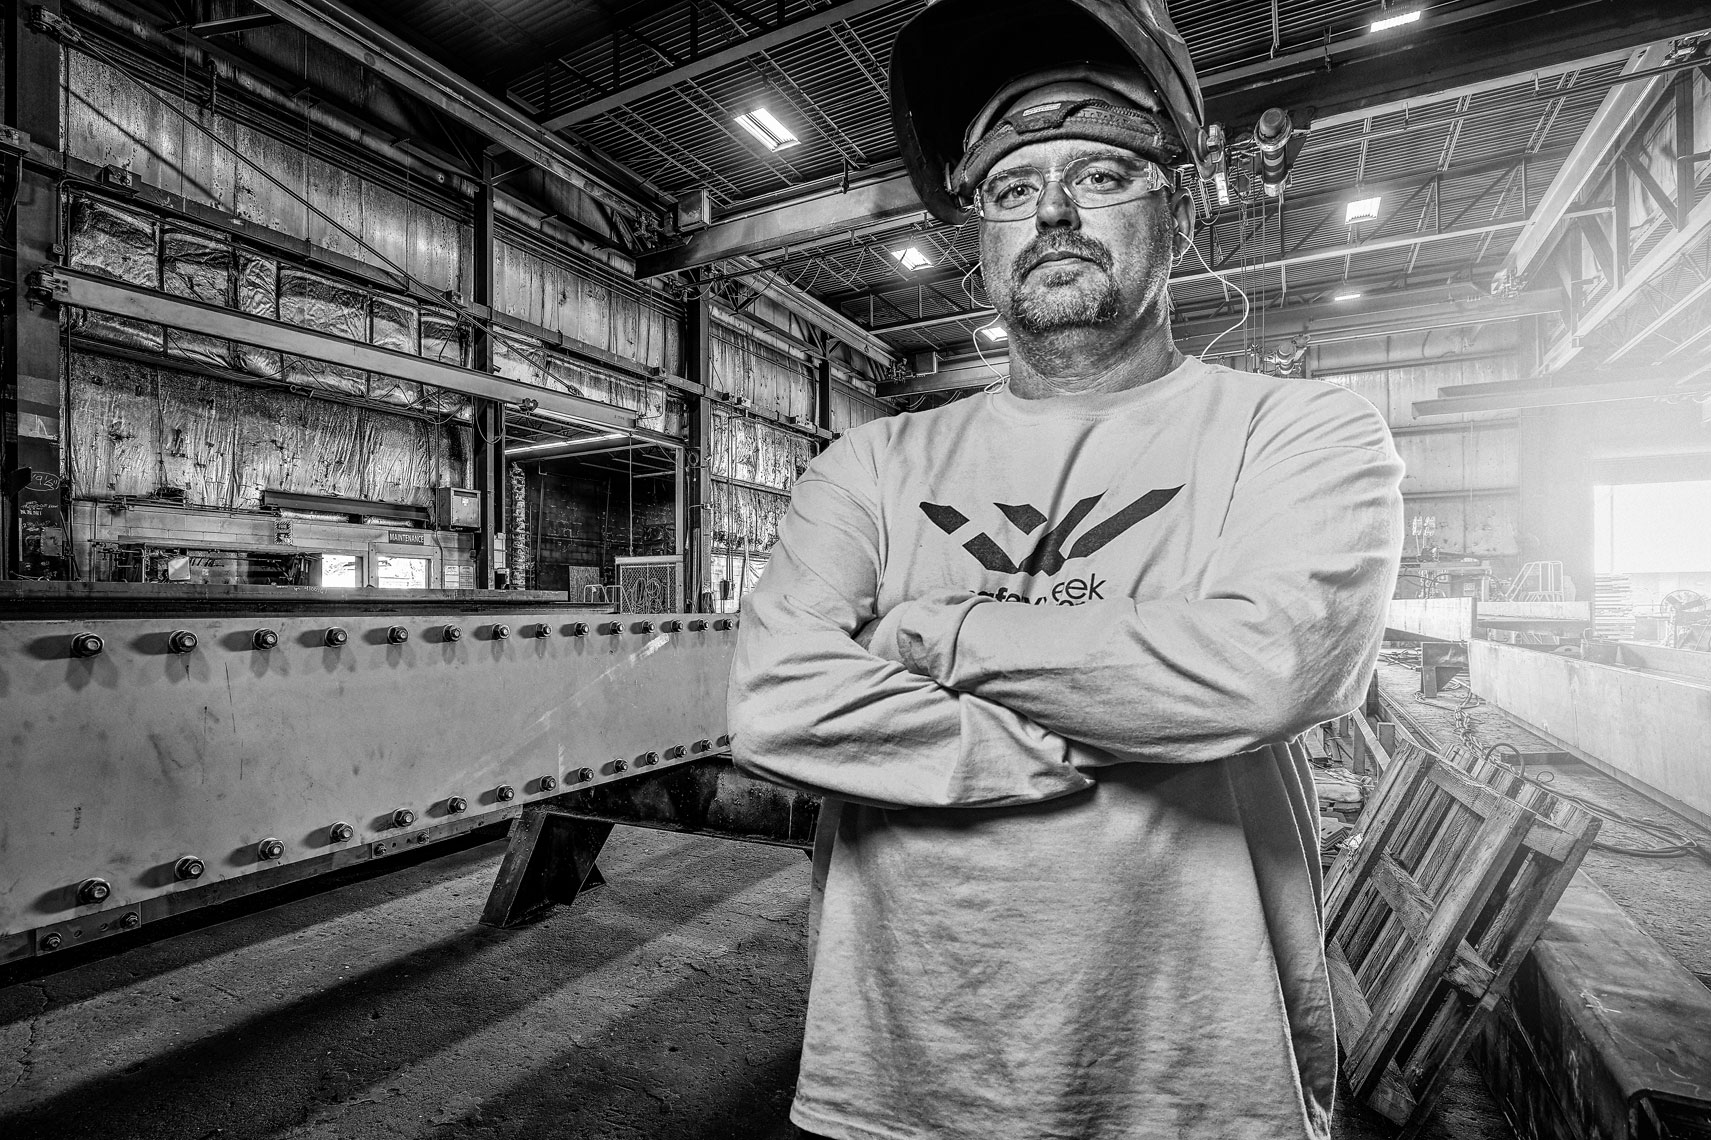 Lejeune/steel/worker/lifestyle photography